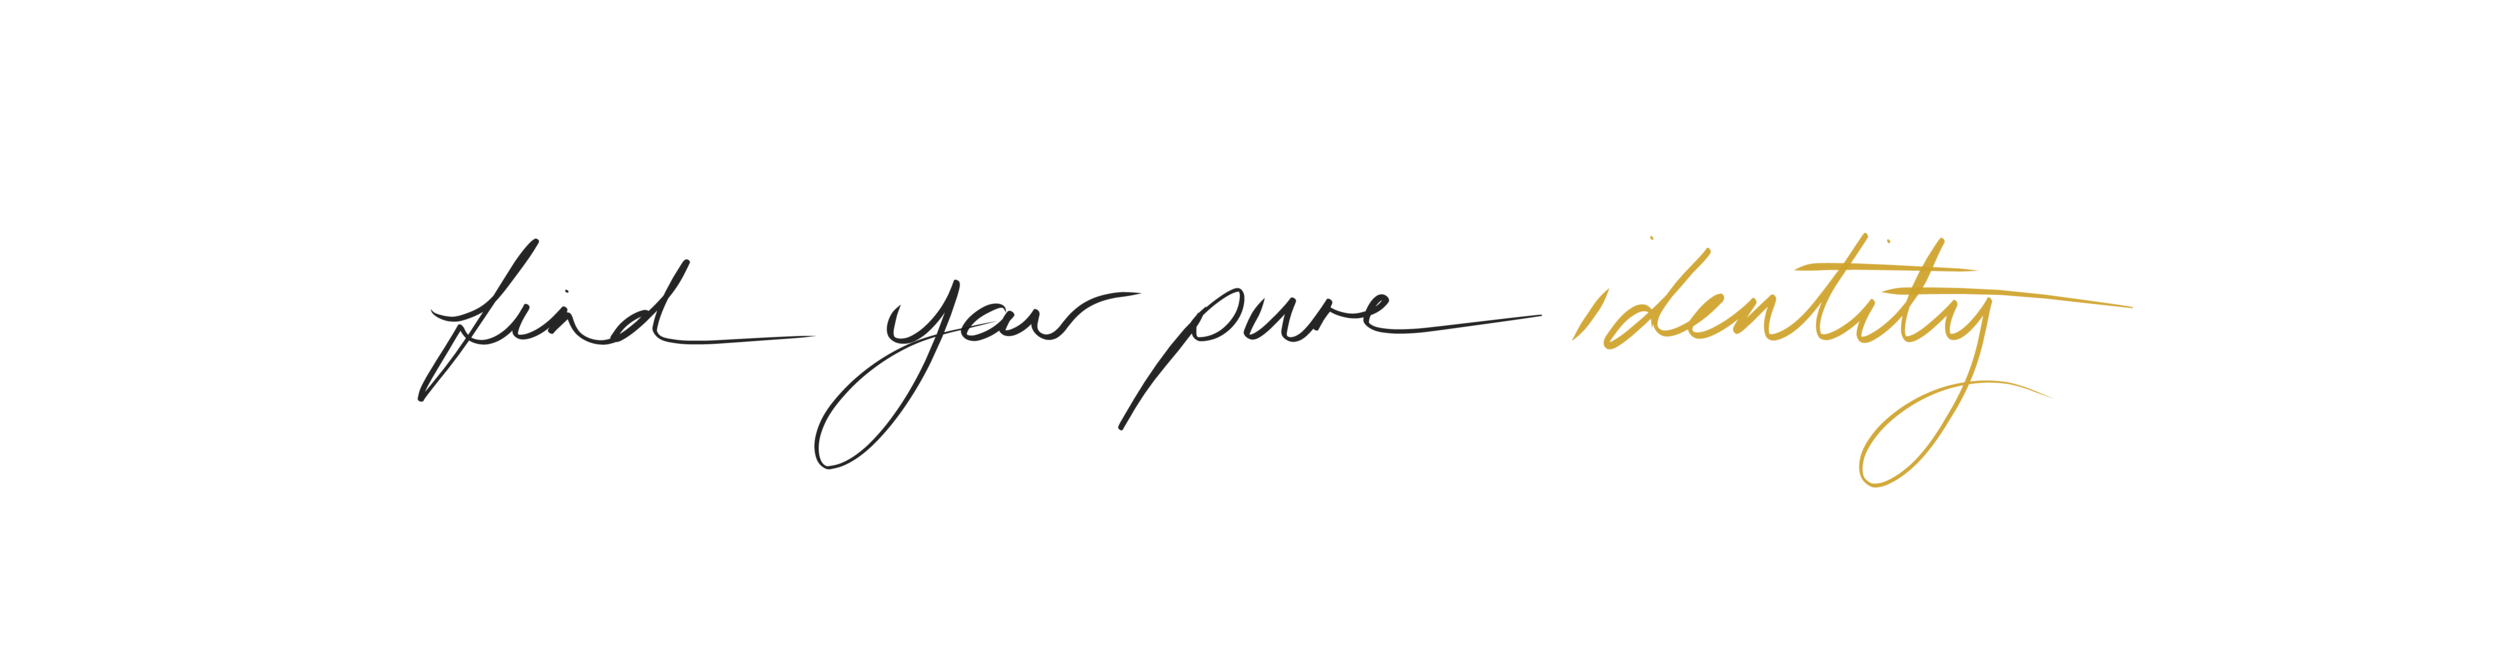 Pure Identity Hand Writing-01.png